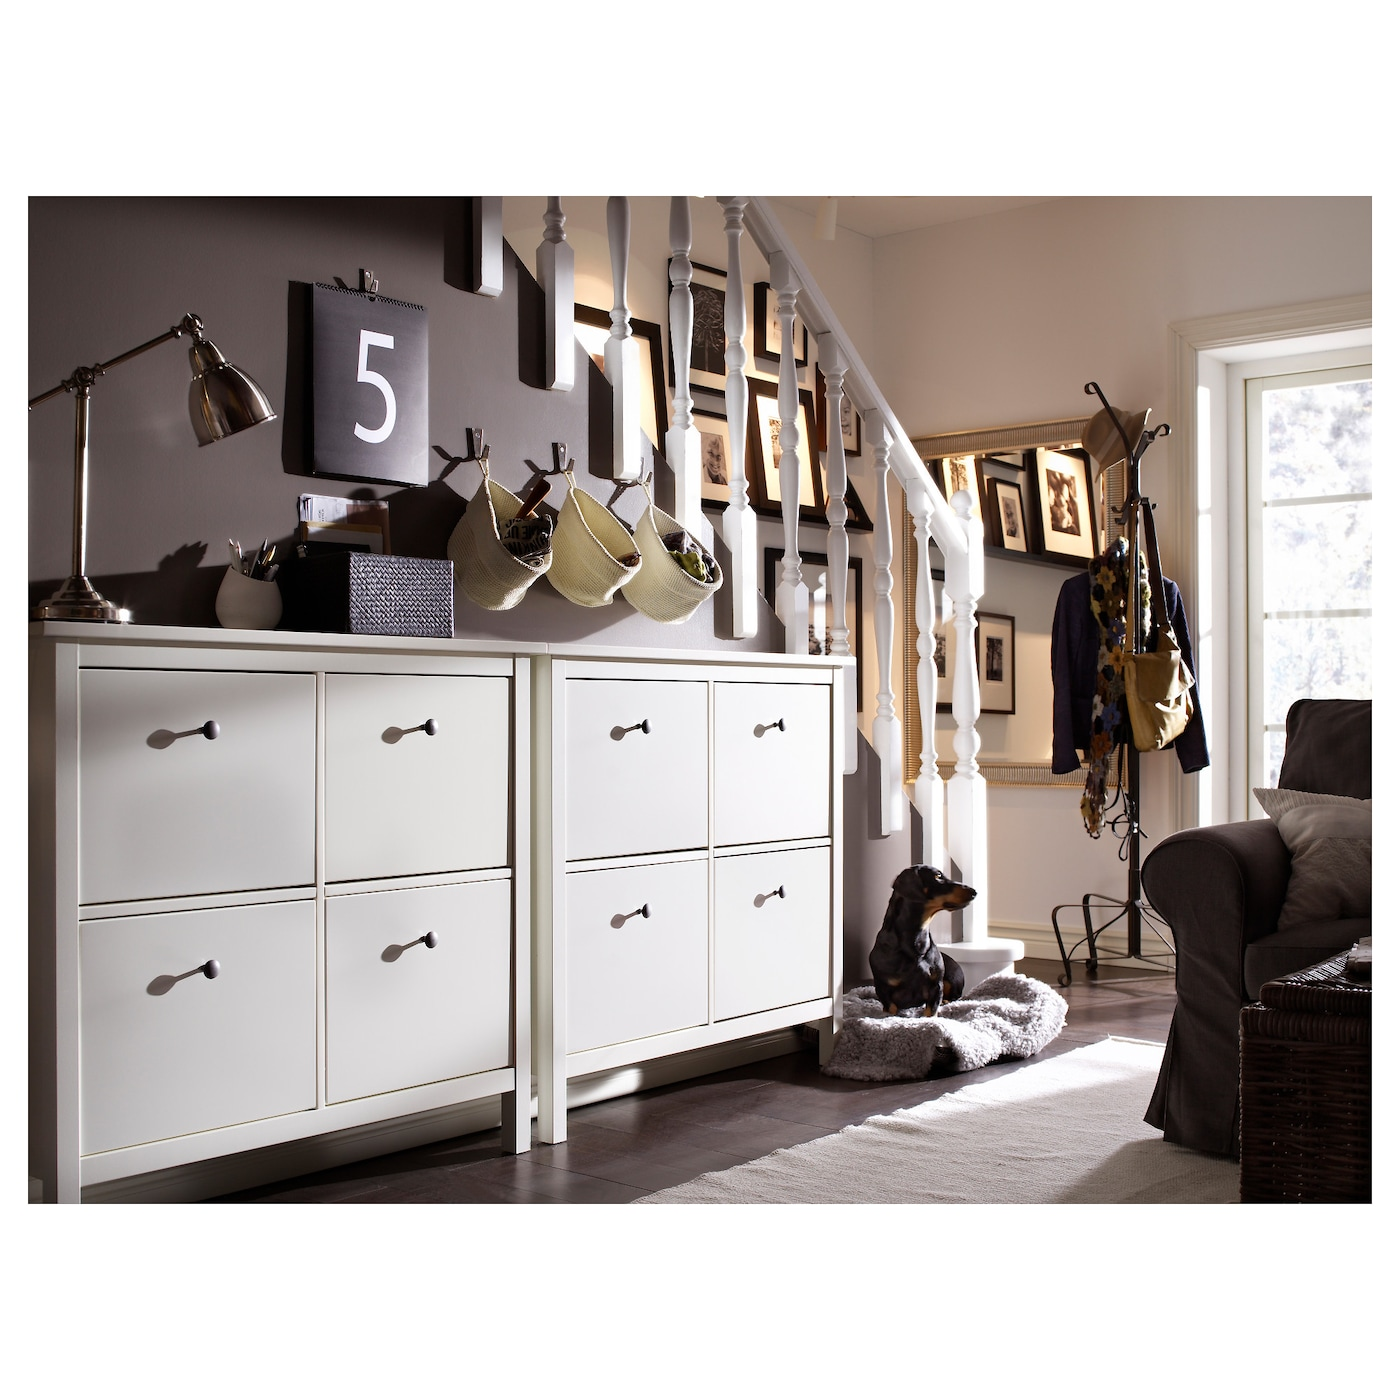 hemnes range chaussures 4 casiers blanc 107x101 cm ikea. Black Bedroom Furniture Sets. Home Design Ideas